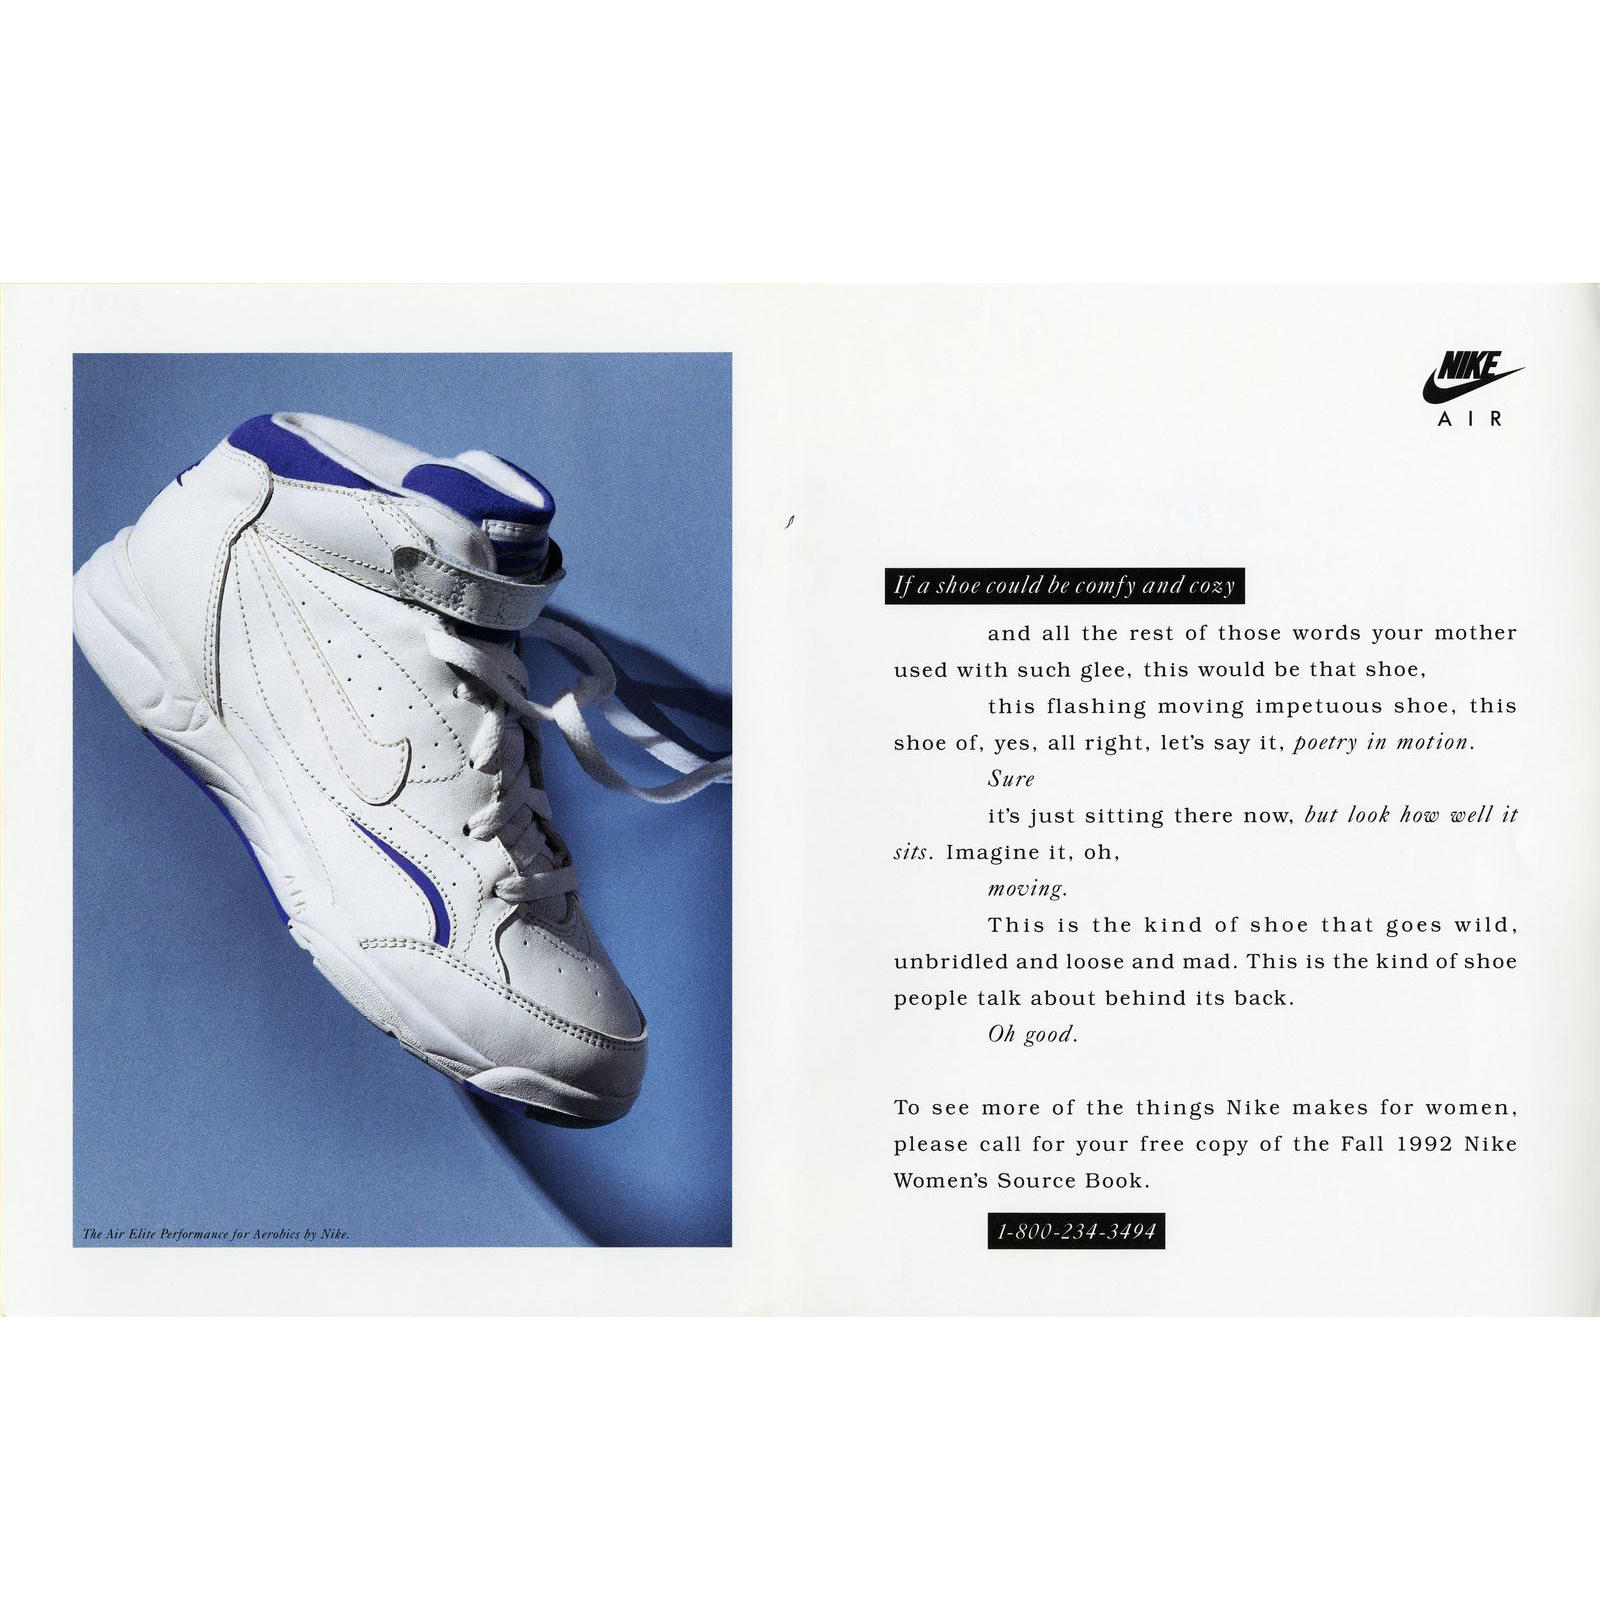 Nike Puts Women Front And Center For 40 Years And Counting Nike News